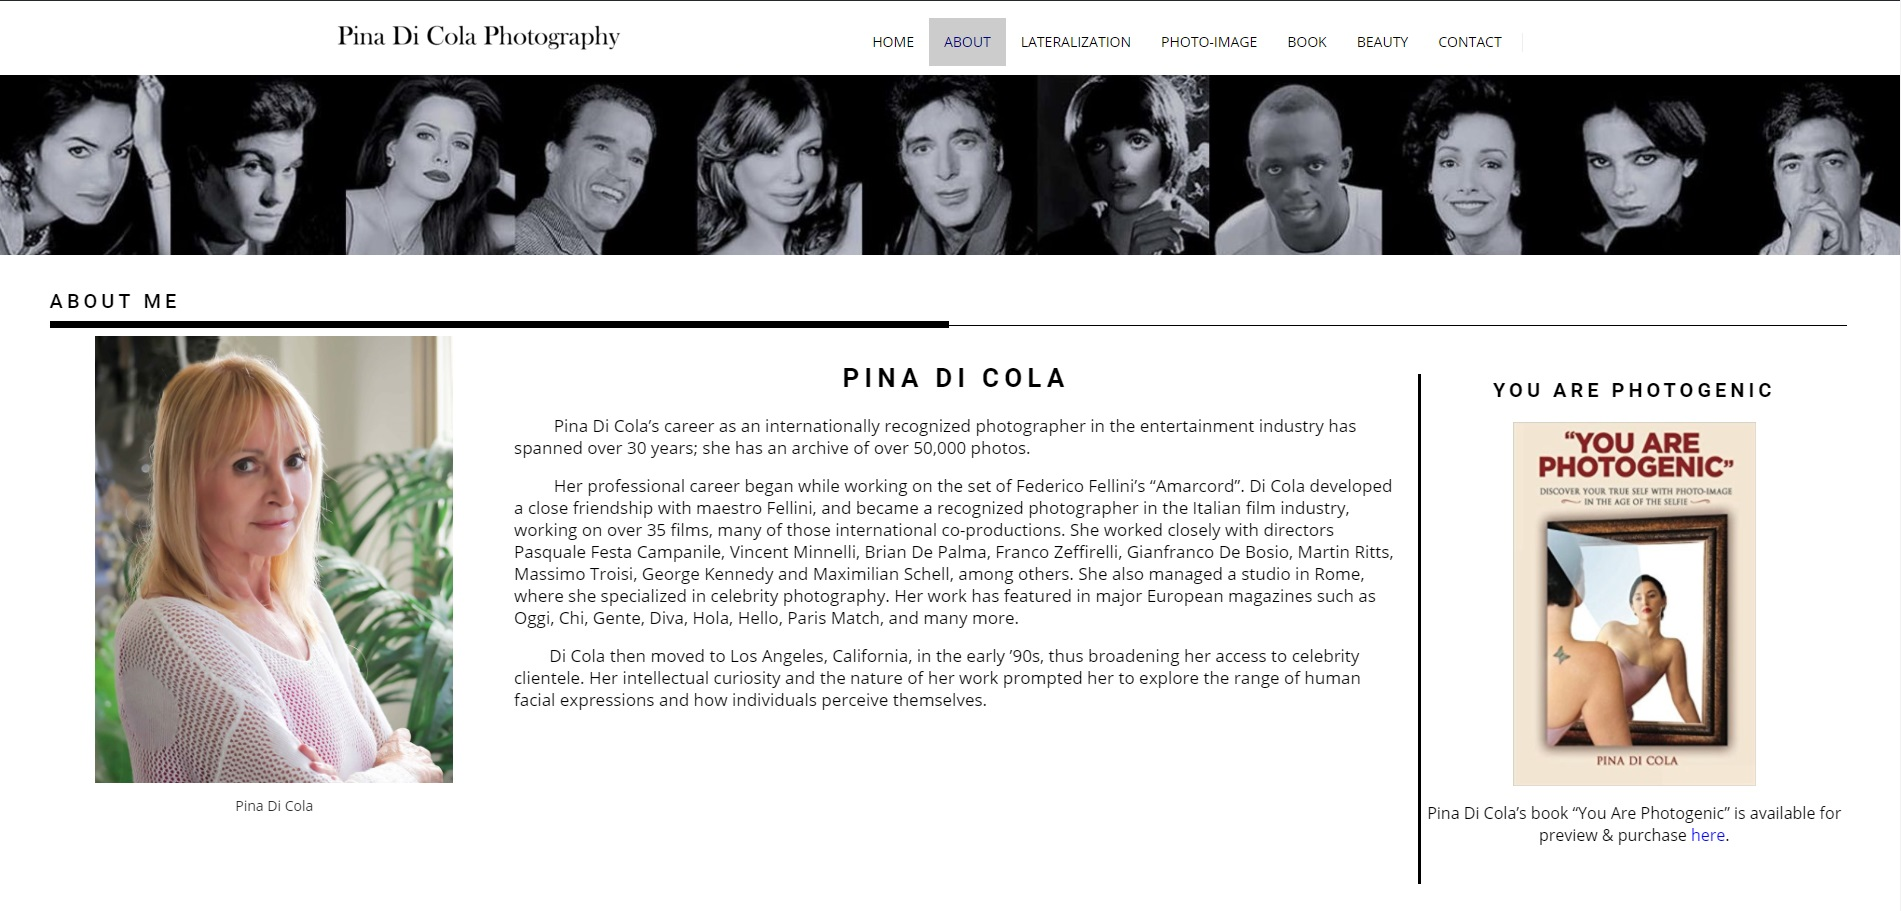 Pina Di Cola Photography